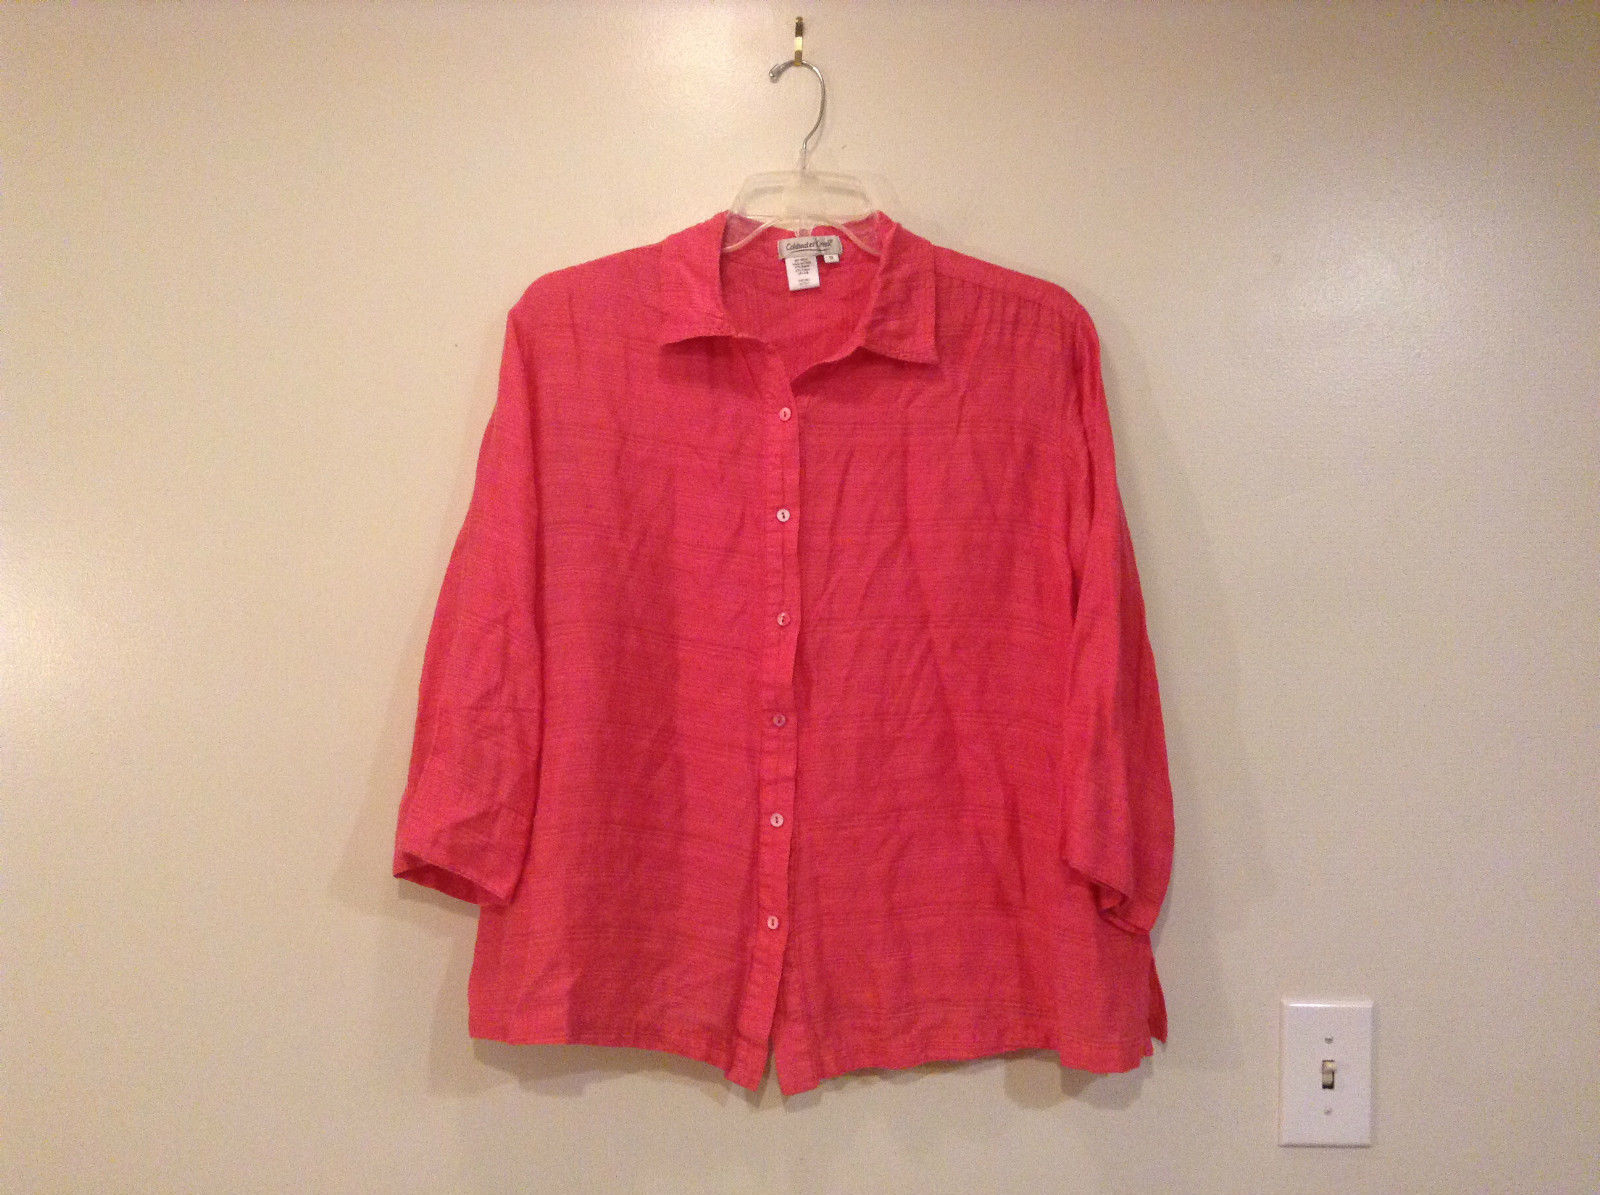 Bright Pink Long Sleeve Button Up Shirt Coldwater Creek Size 1X Light Fabric